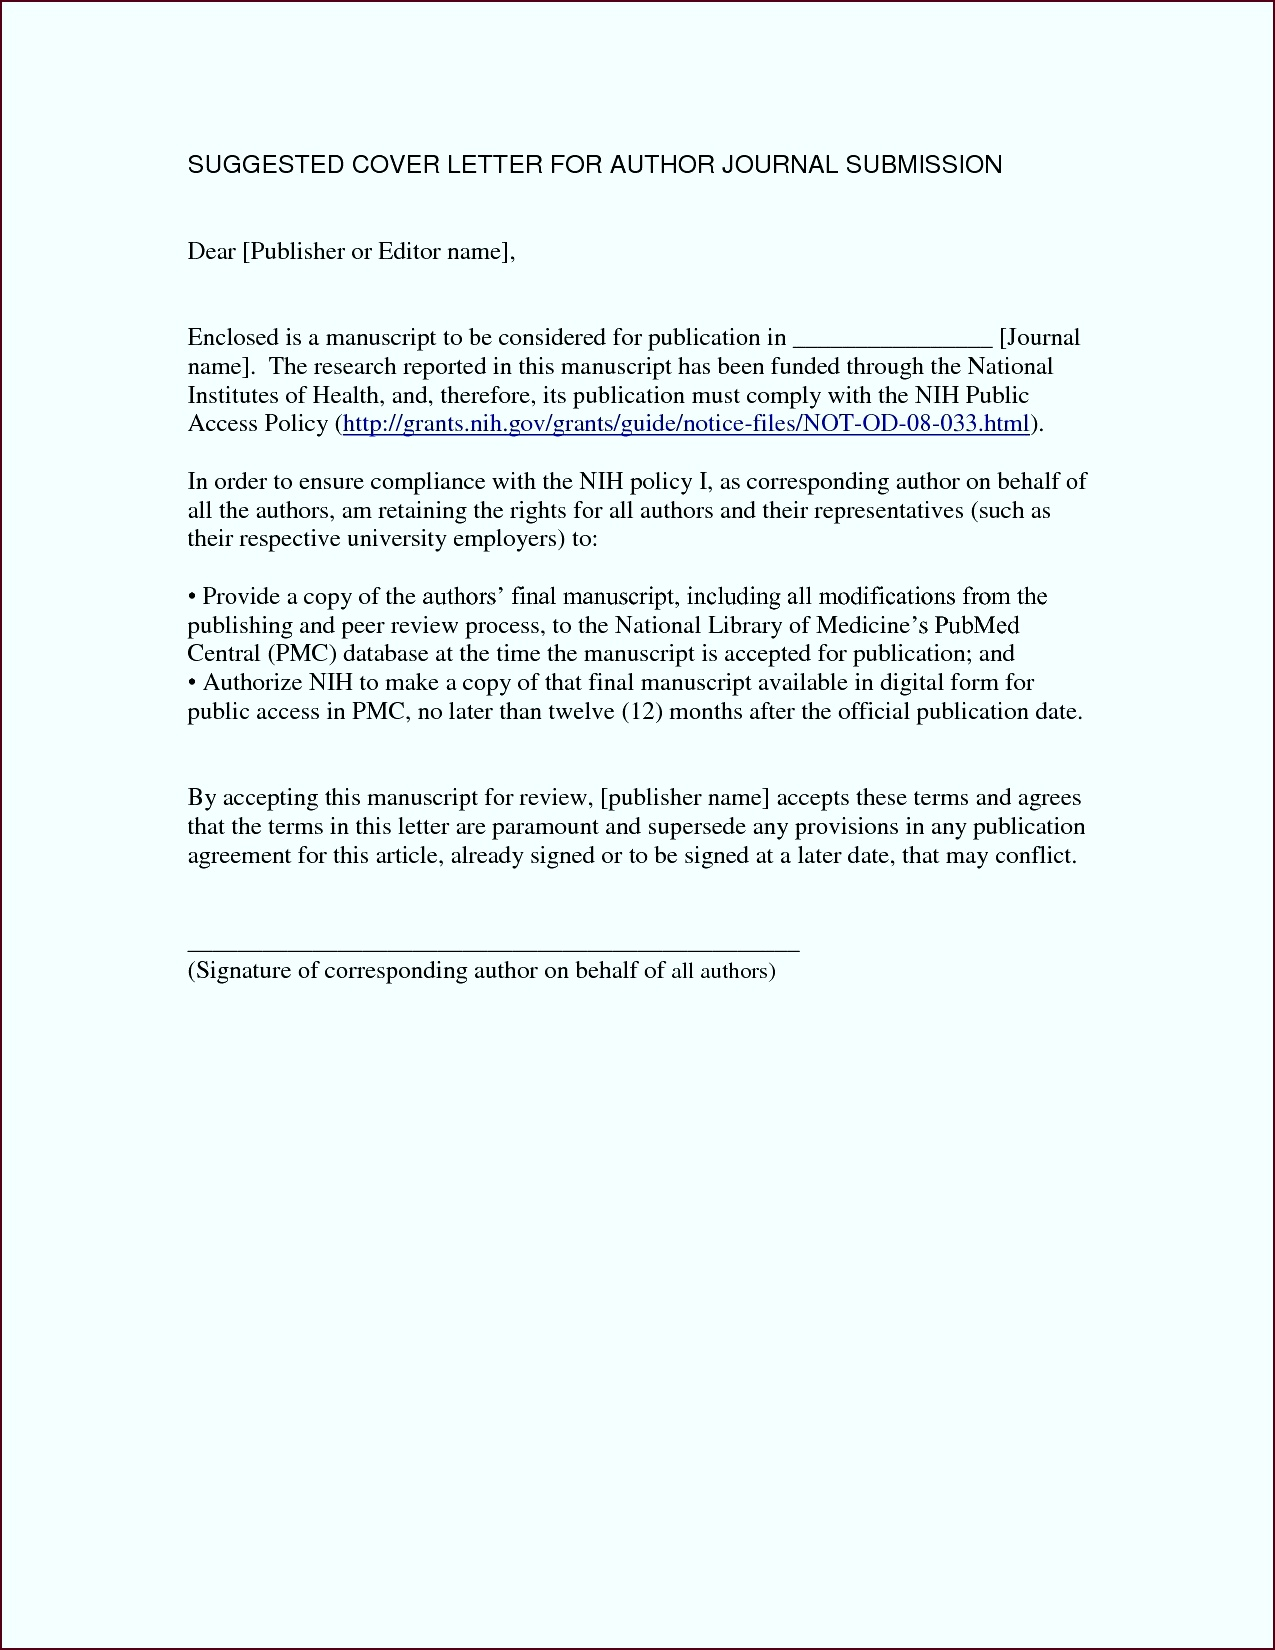 leave of absence letter template for school fresh example jury duty excuse letter employer fresh public defender of leave of absence letter template for school yiapt